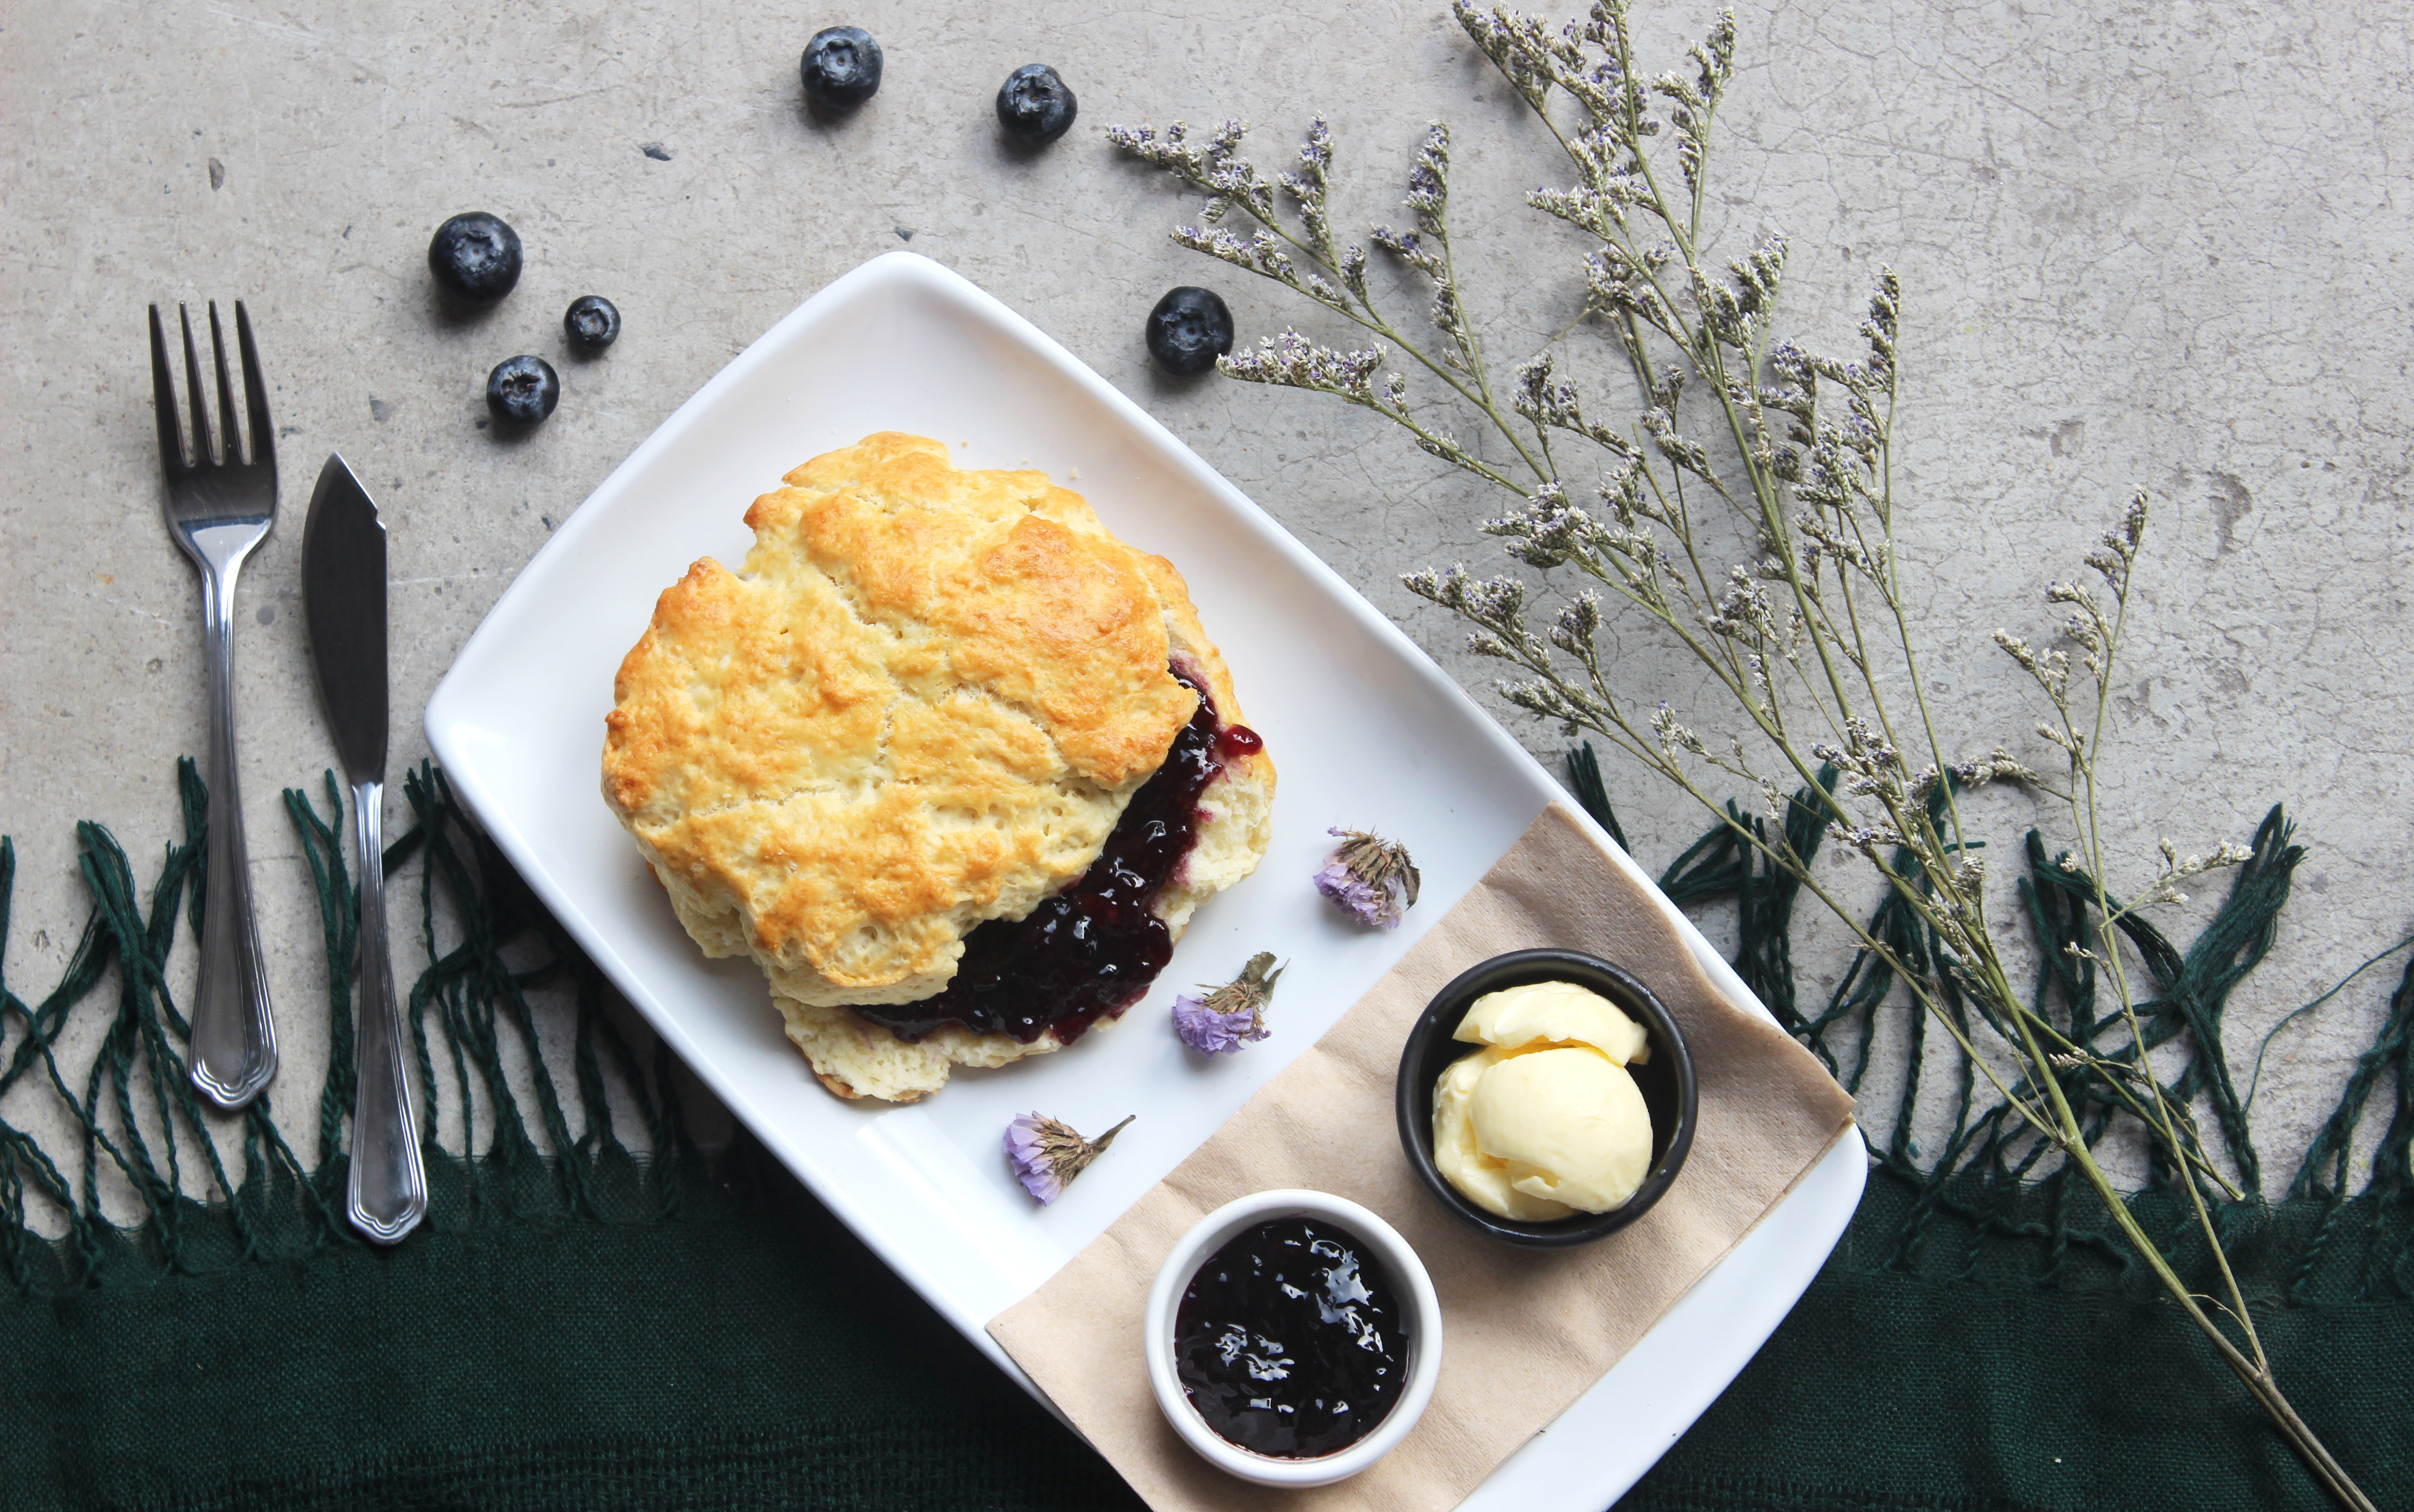 Biscuit with Butter and Jam